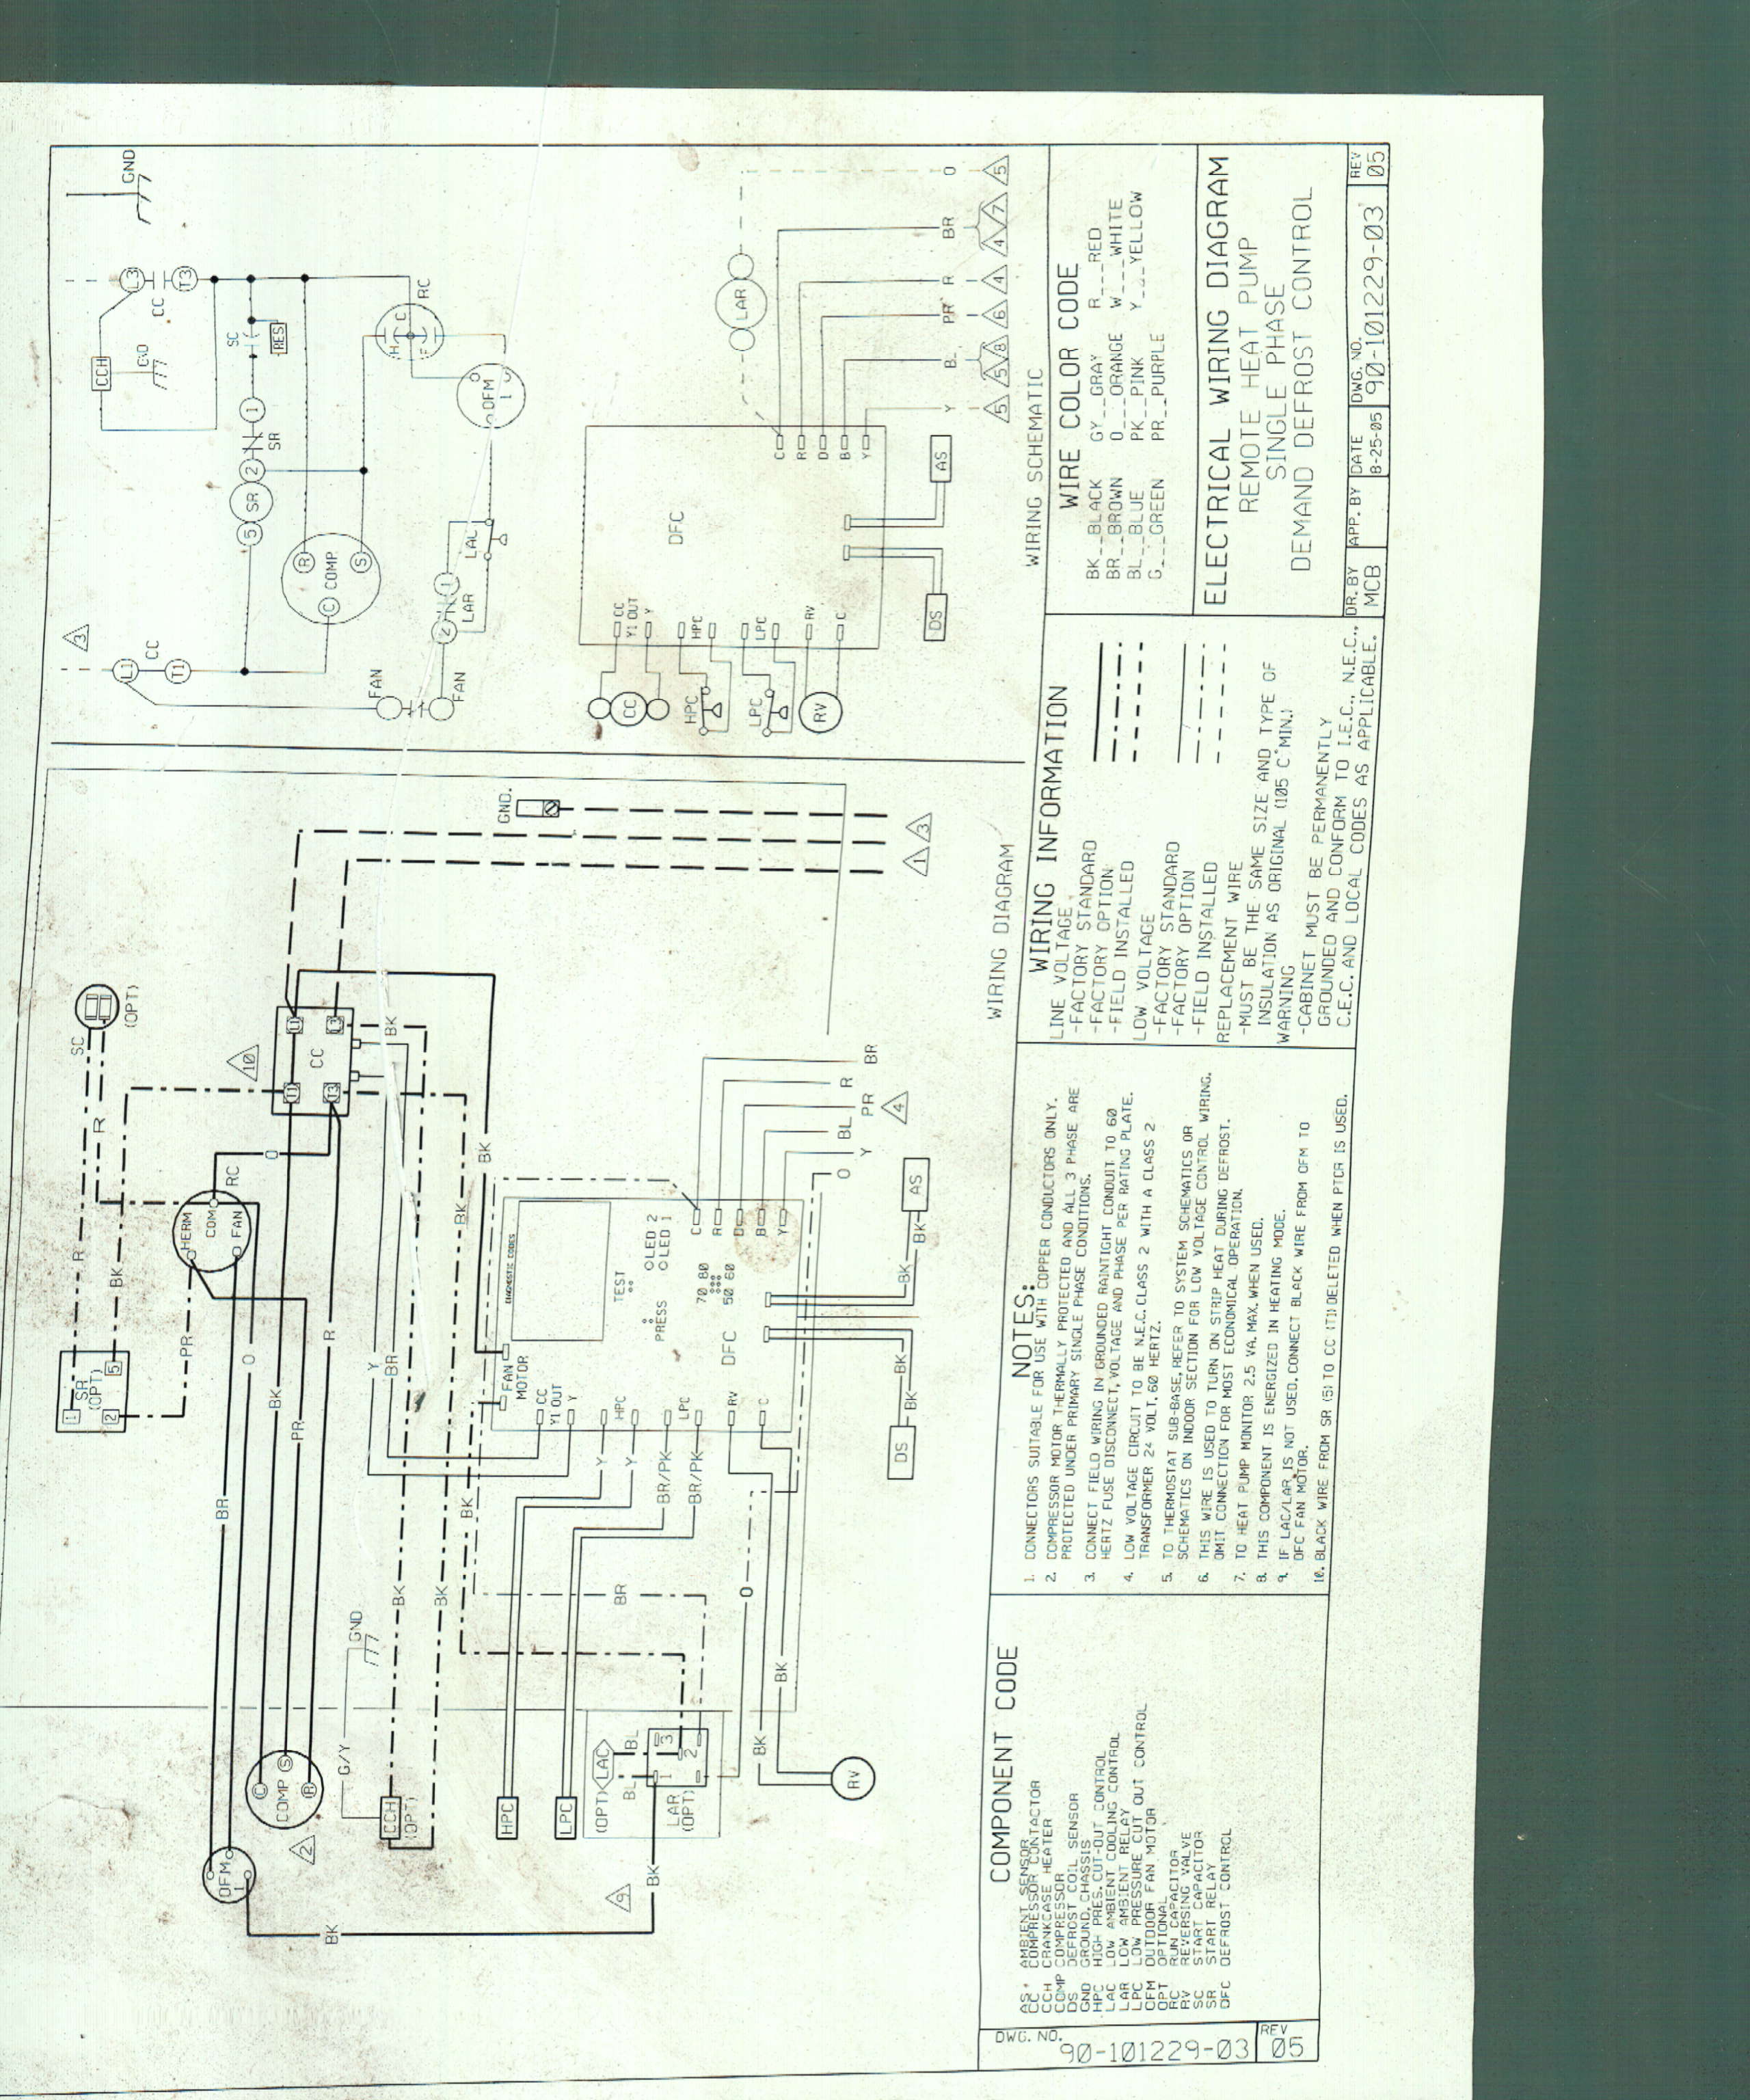 model wiring ruud schematic rrgg05n24jkr Images Gallery. i am working on a  ruud achiever heat pump model upne